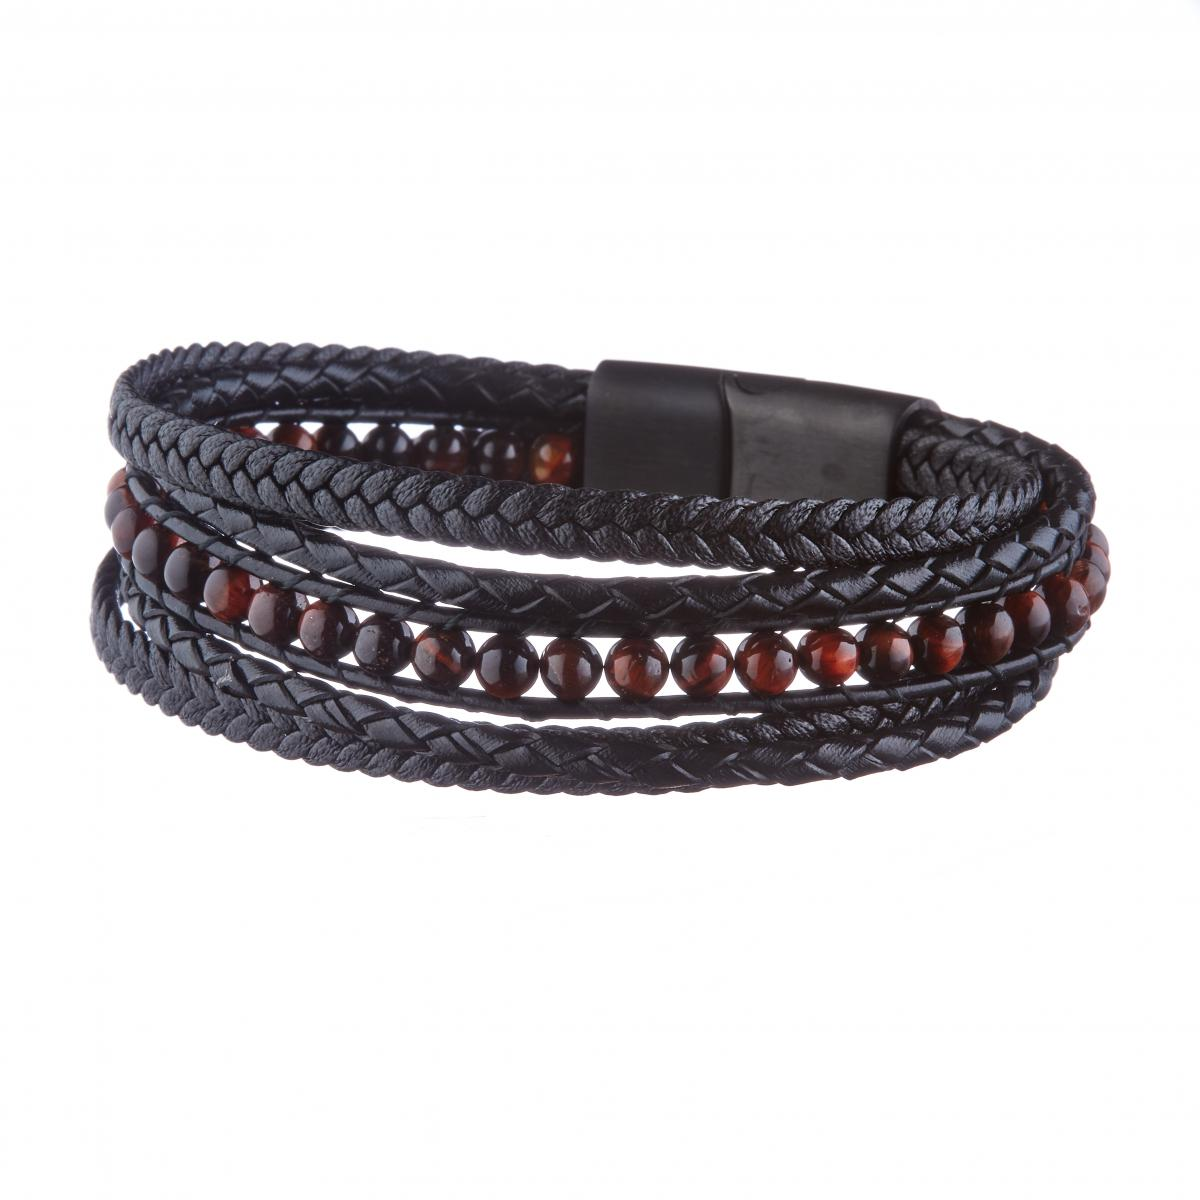 Bracelet Homme Geographical Norway  315043 - NOIR/MARRON